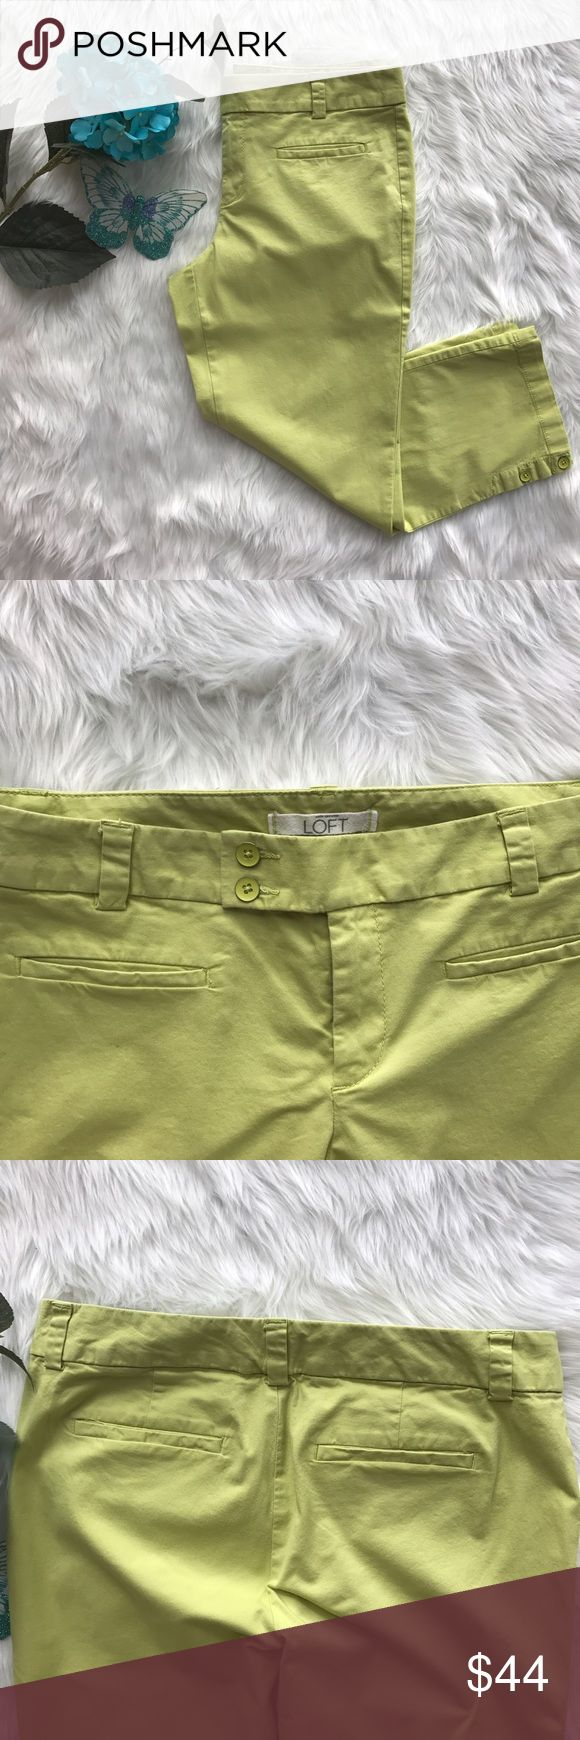 LOFT Marisa Cropped Chinos Great condition. Light signs of wear on the buttons. Size: 6. Color: Lime Green. Features: cropped, belt loops, buttons on bottom of leg, front slash pockets, back welt pockets. Closure: 1 jigger button, 2 front buttons, front zipper. Note: 2 small stains on the back of the right leg (pic #4). LOFT Pants Capris